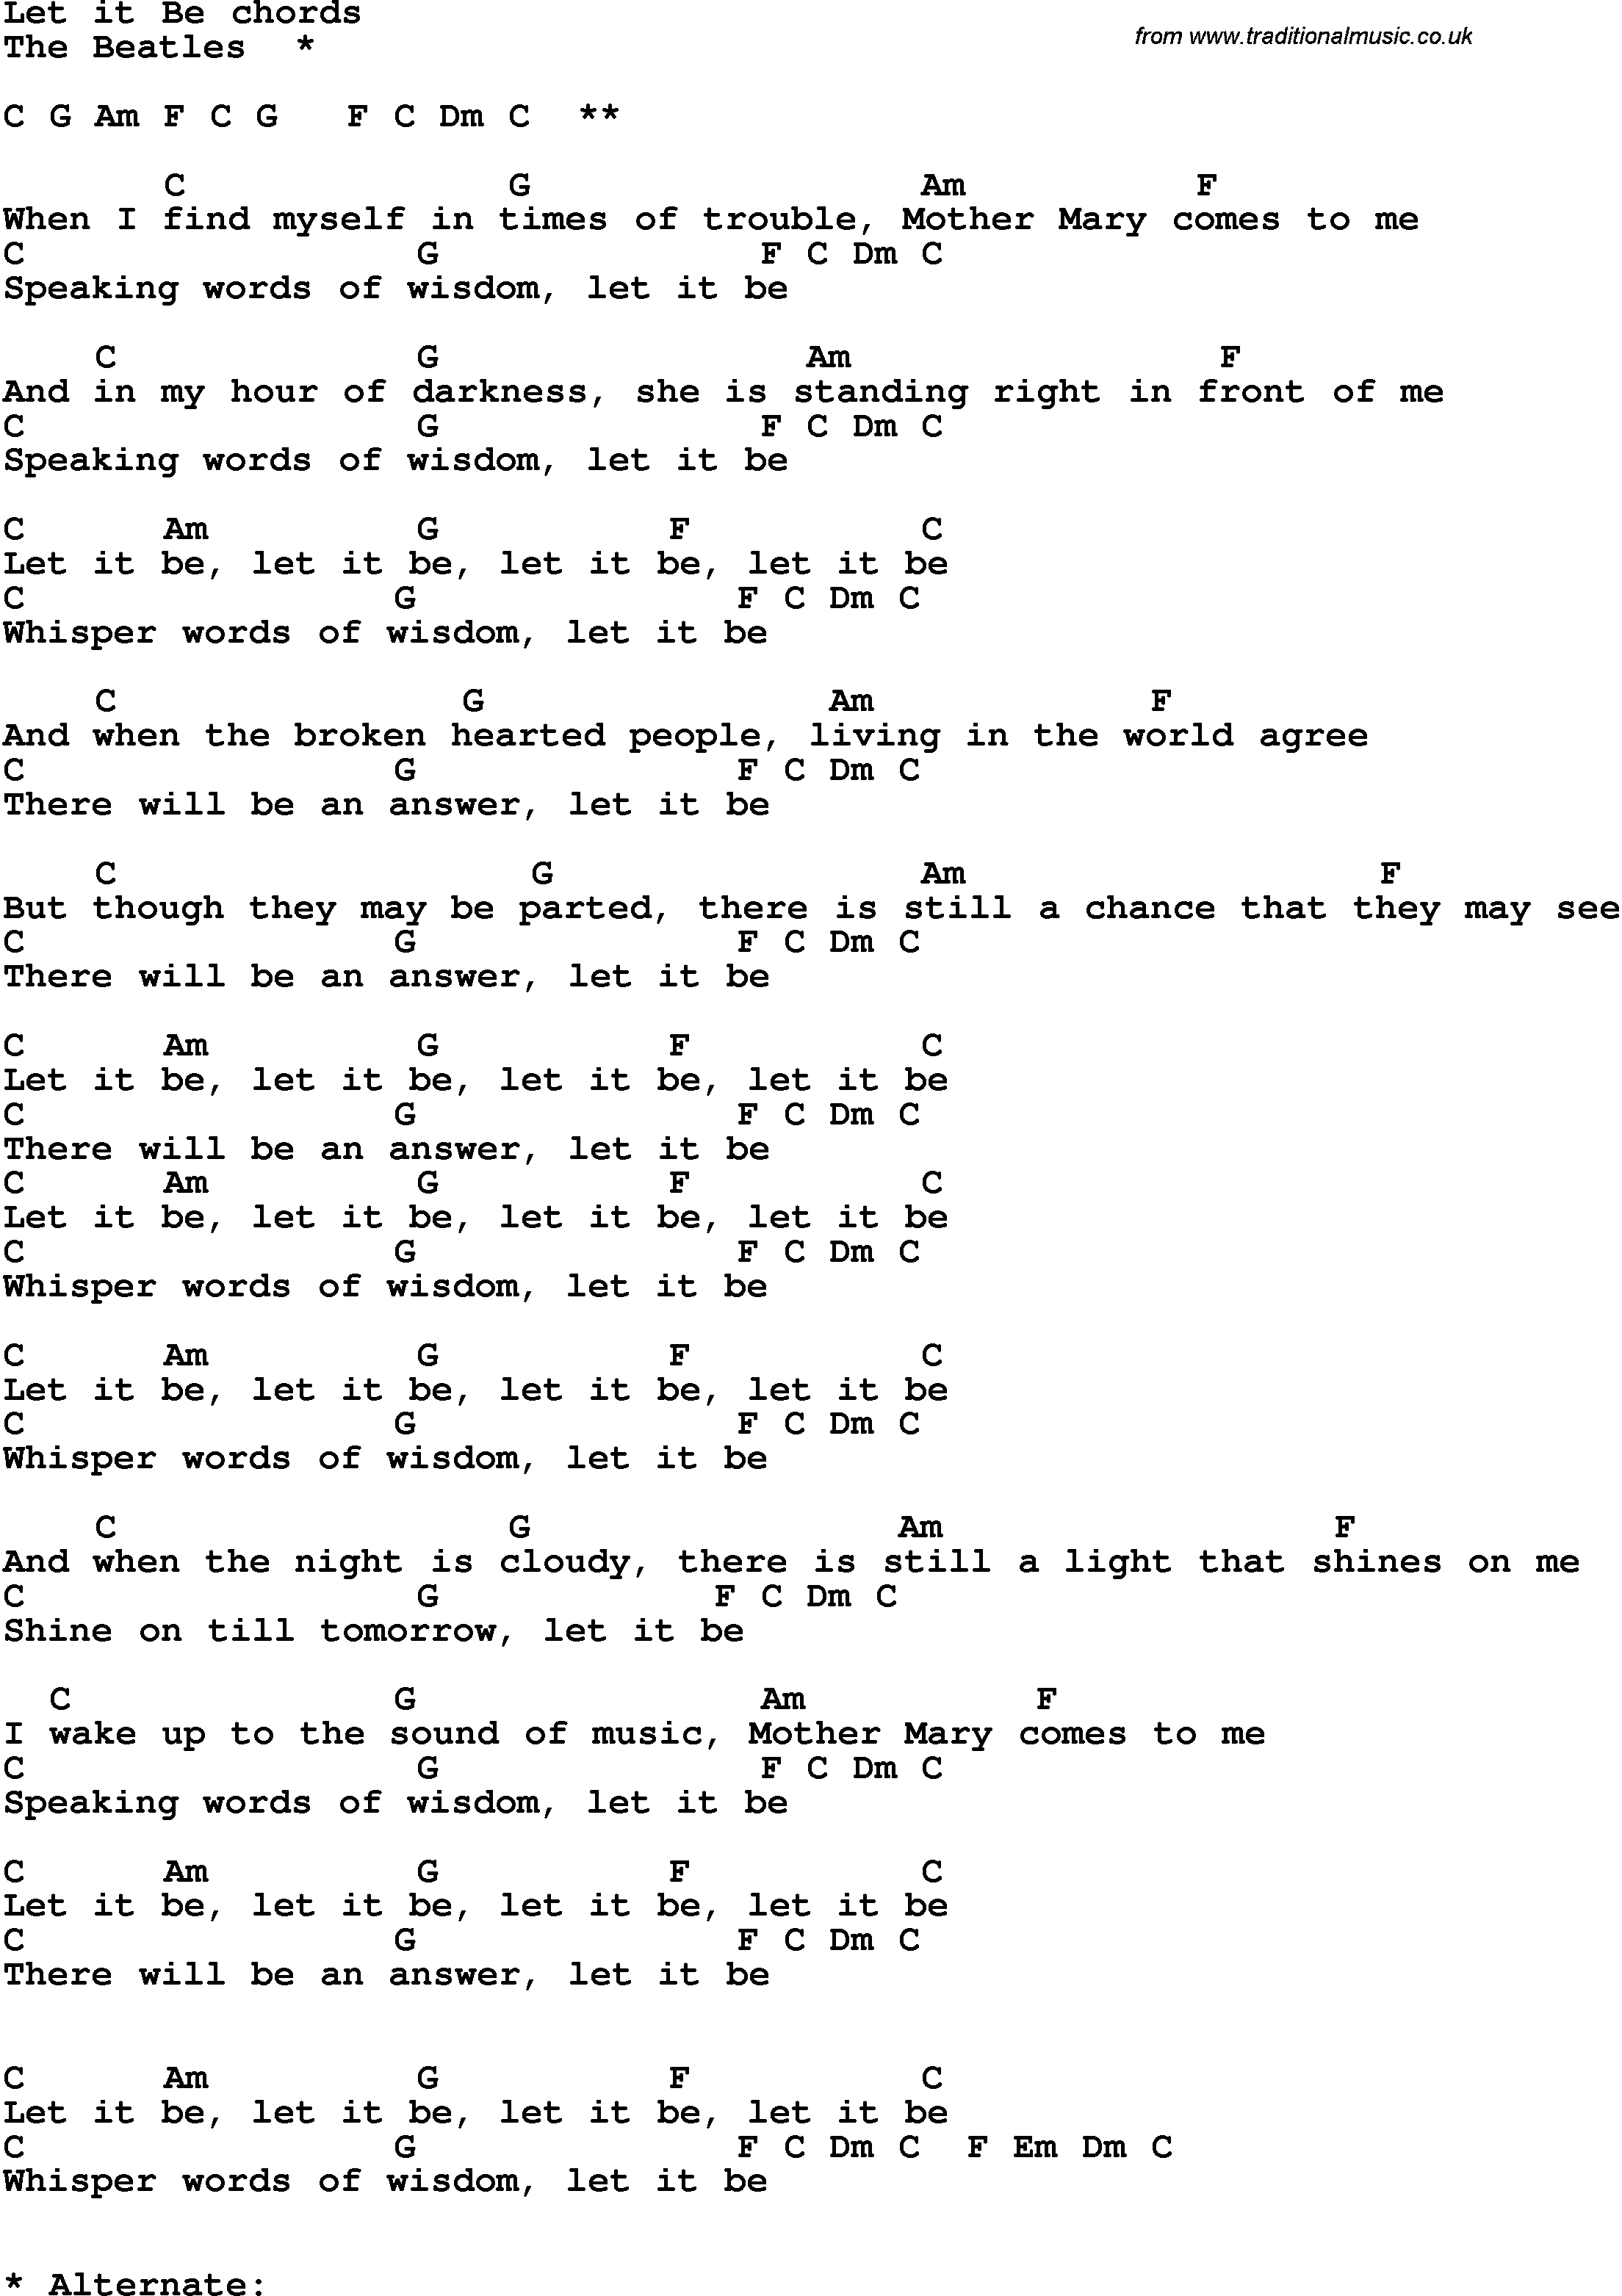 Let It Be Chords Song Lyrics With Guitar Chords For Let It Be The Beatles